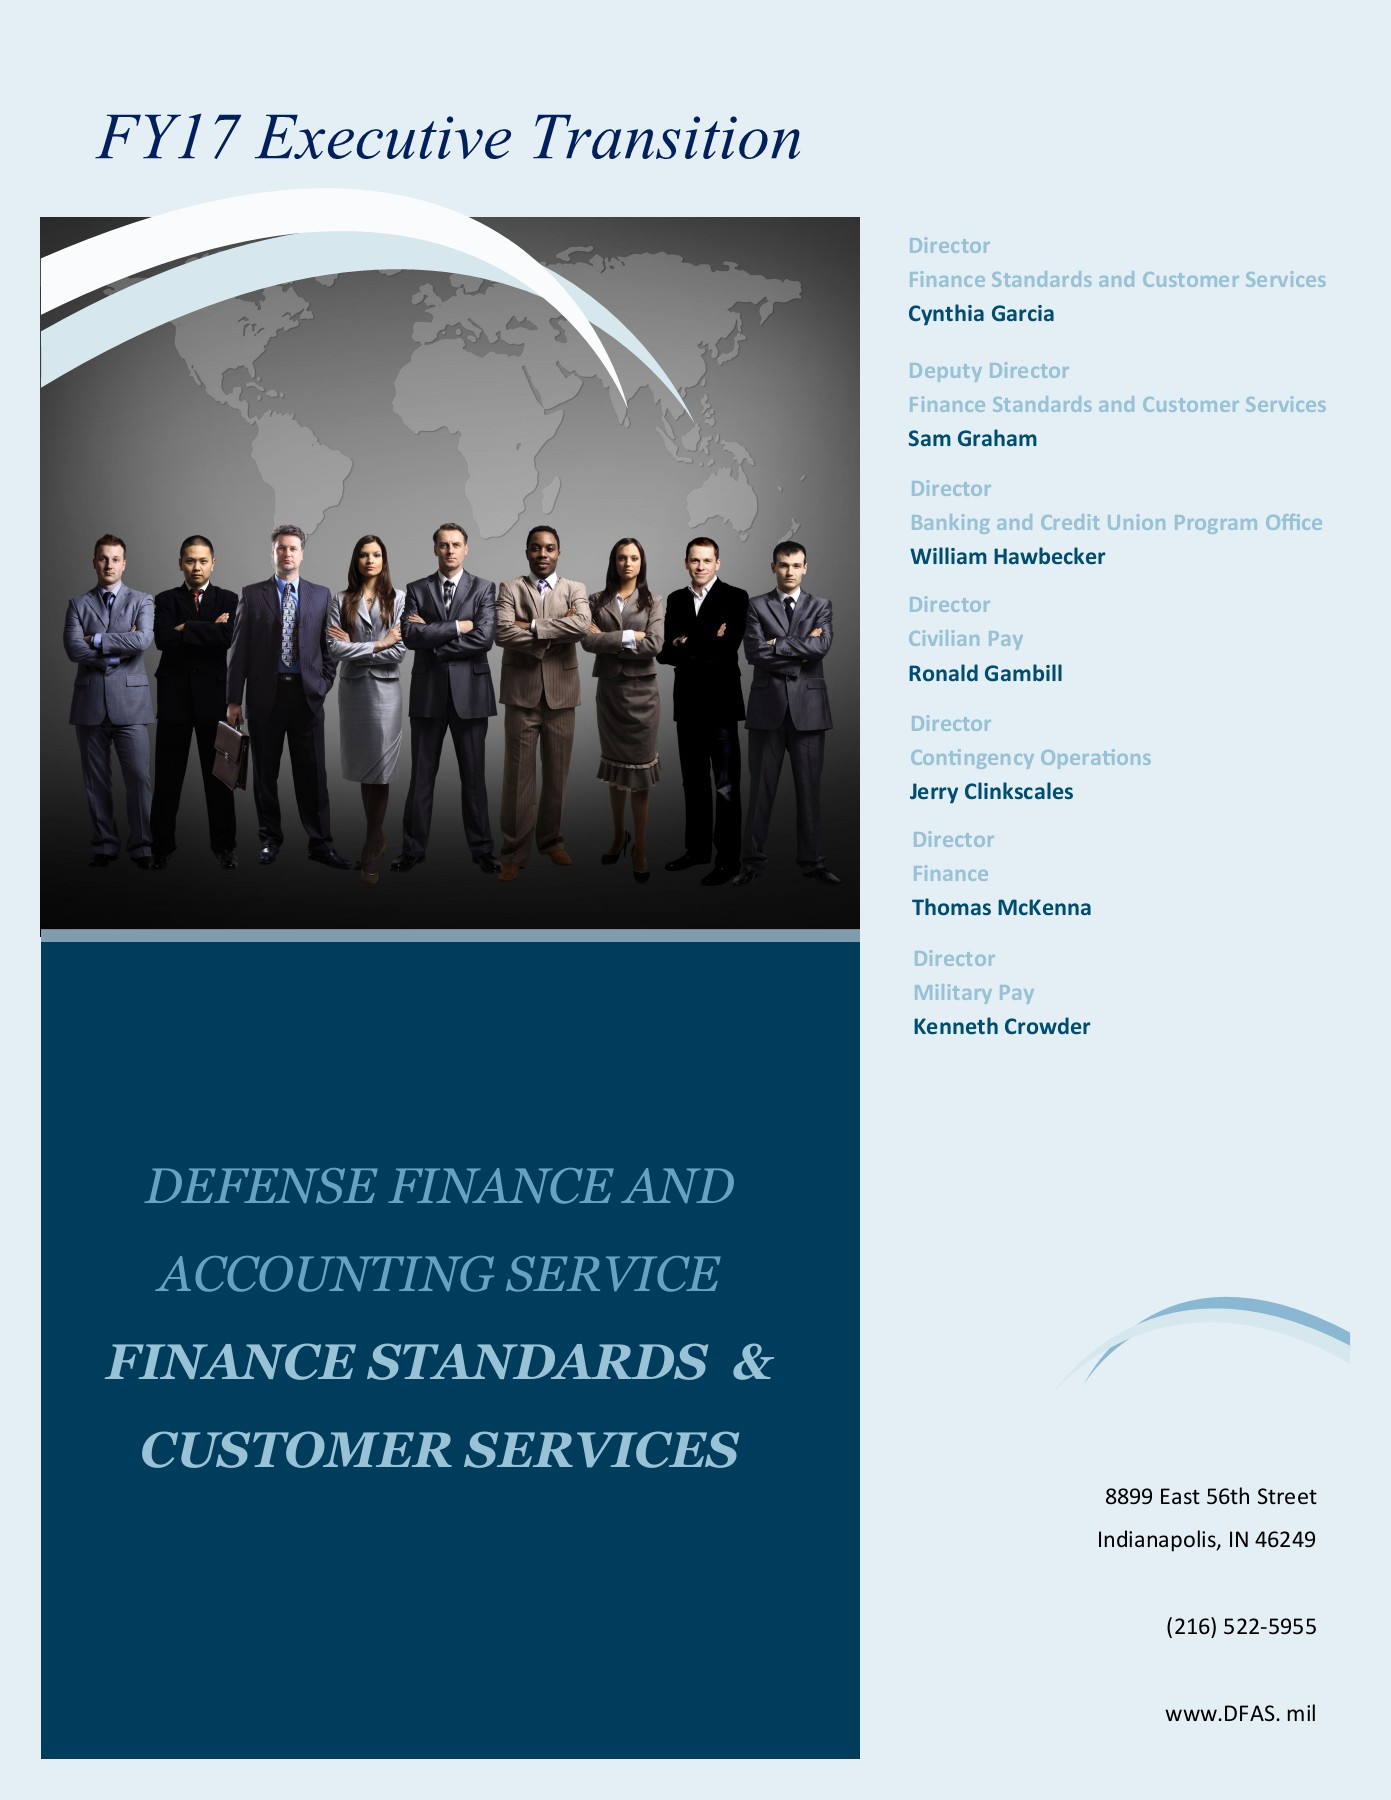 Transition Booklet 9 2 Pages 51 - 79 - Text Version   AnyFlip